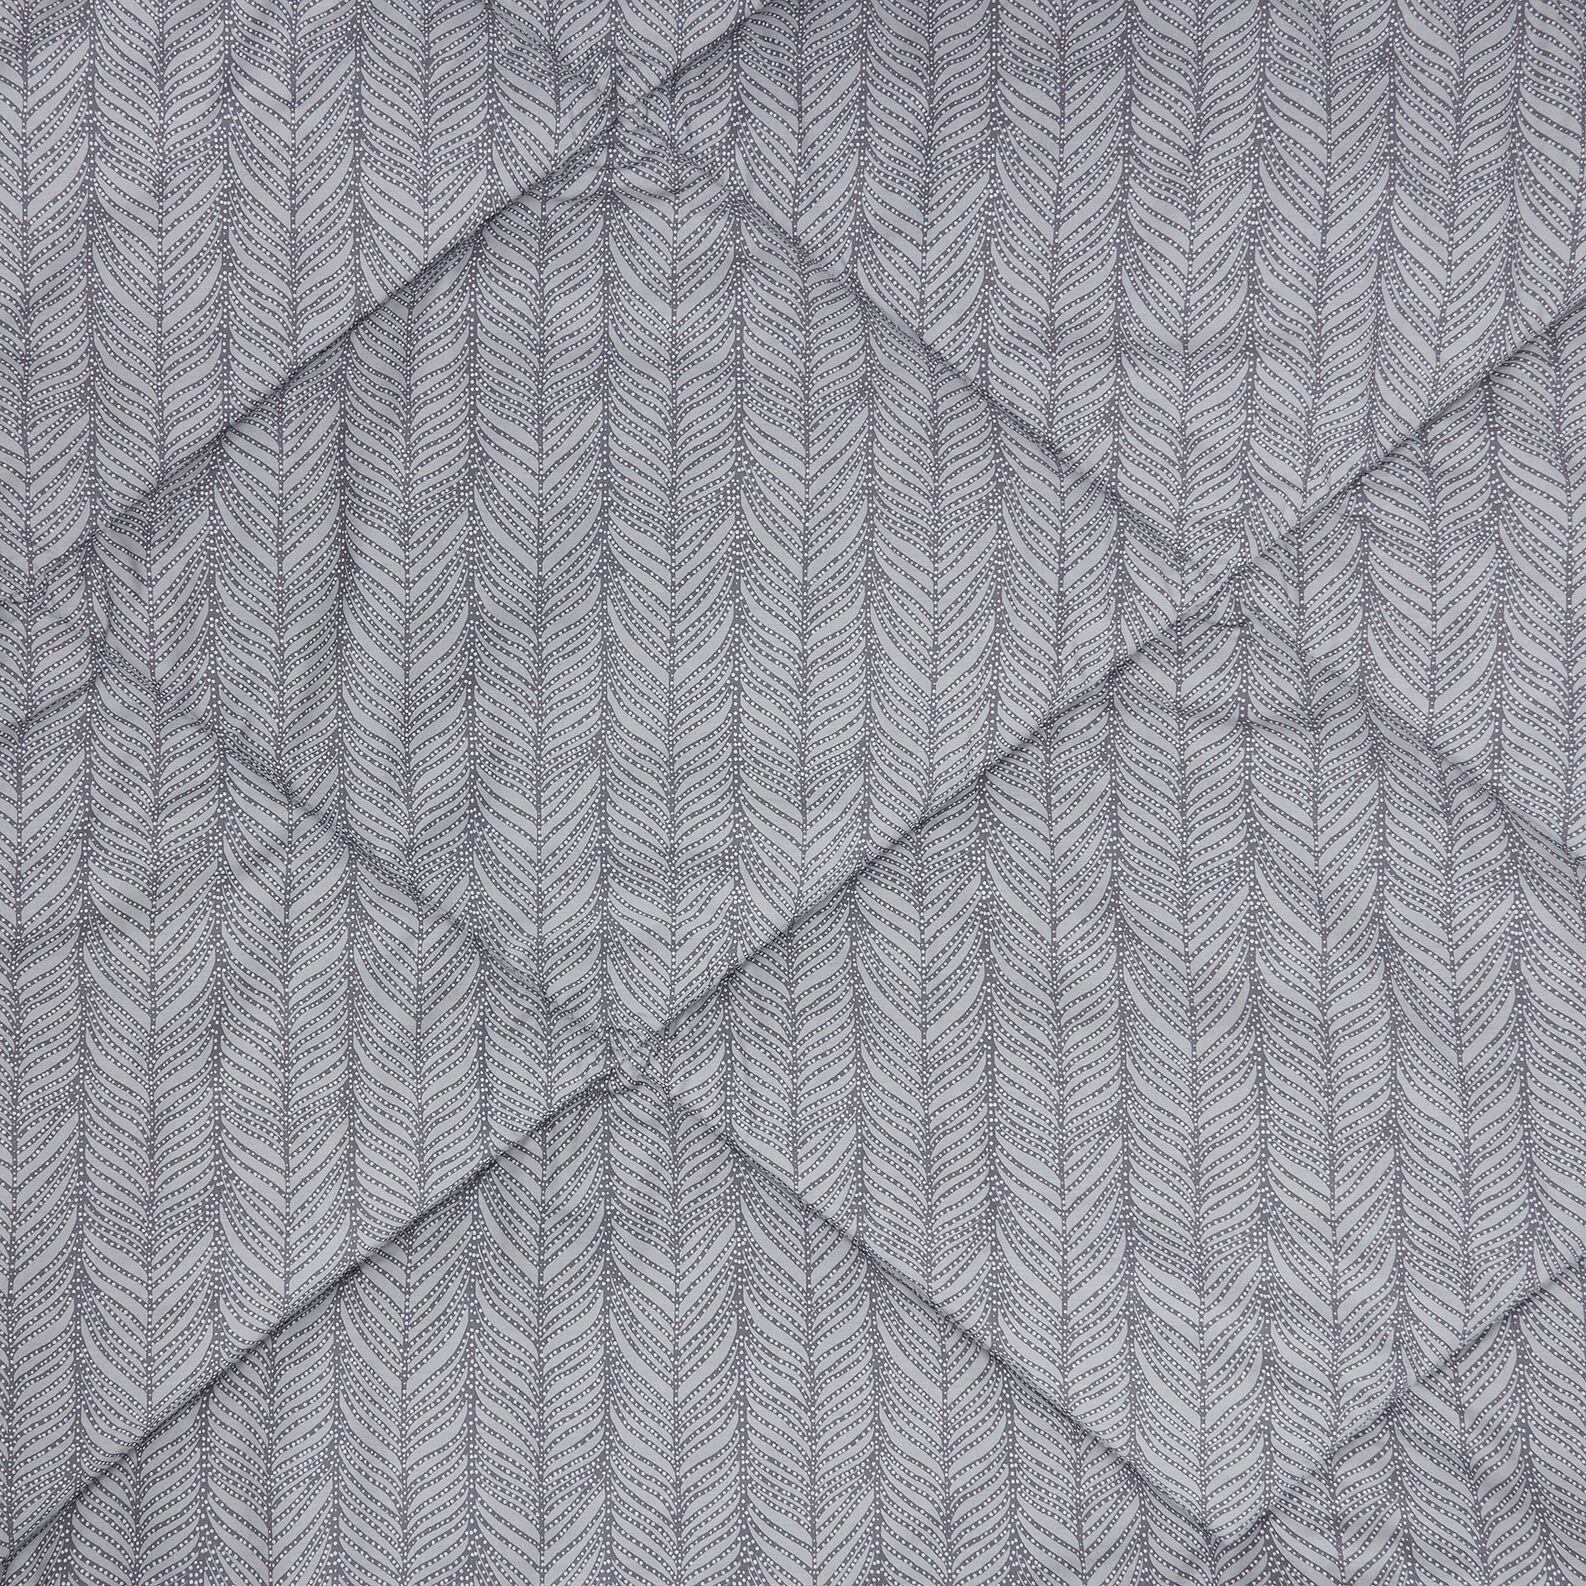 Cotton percale quilt with feather pattern